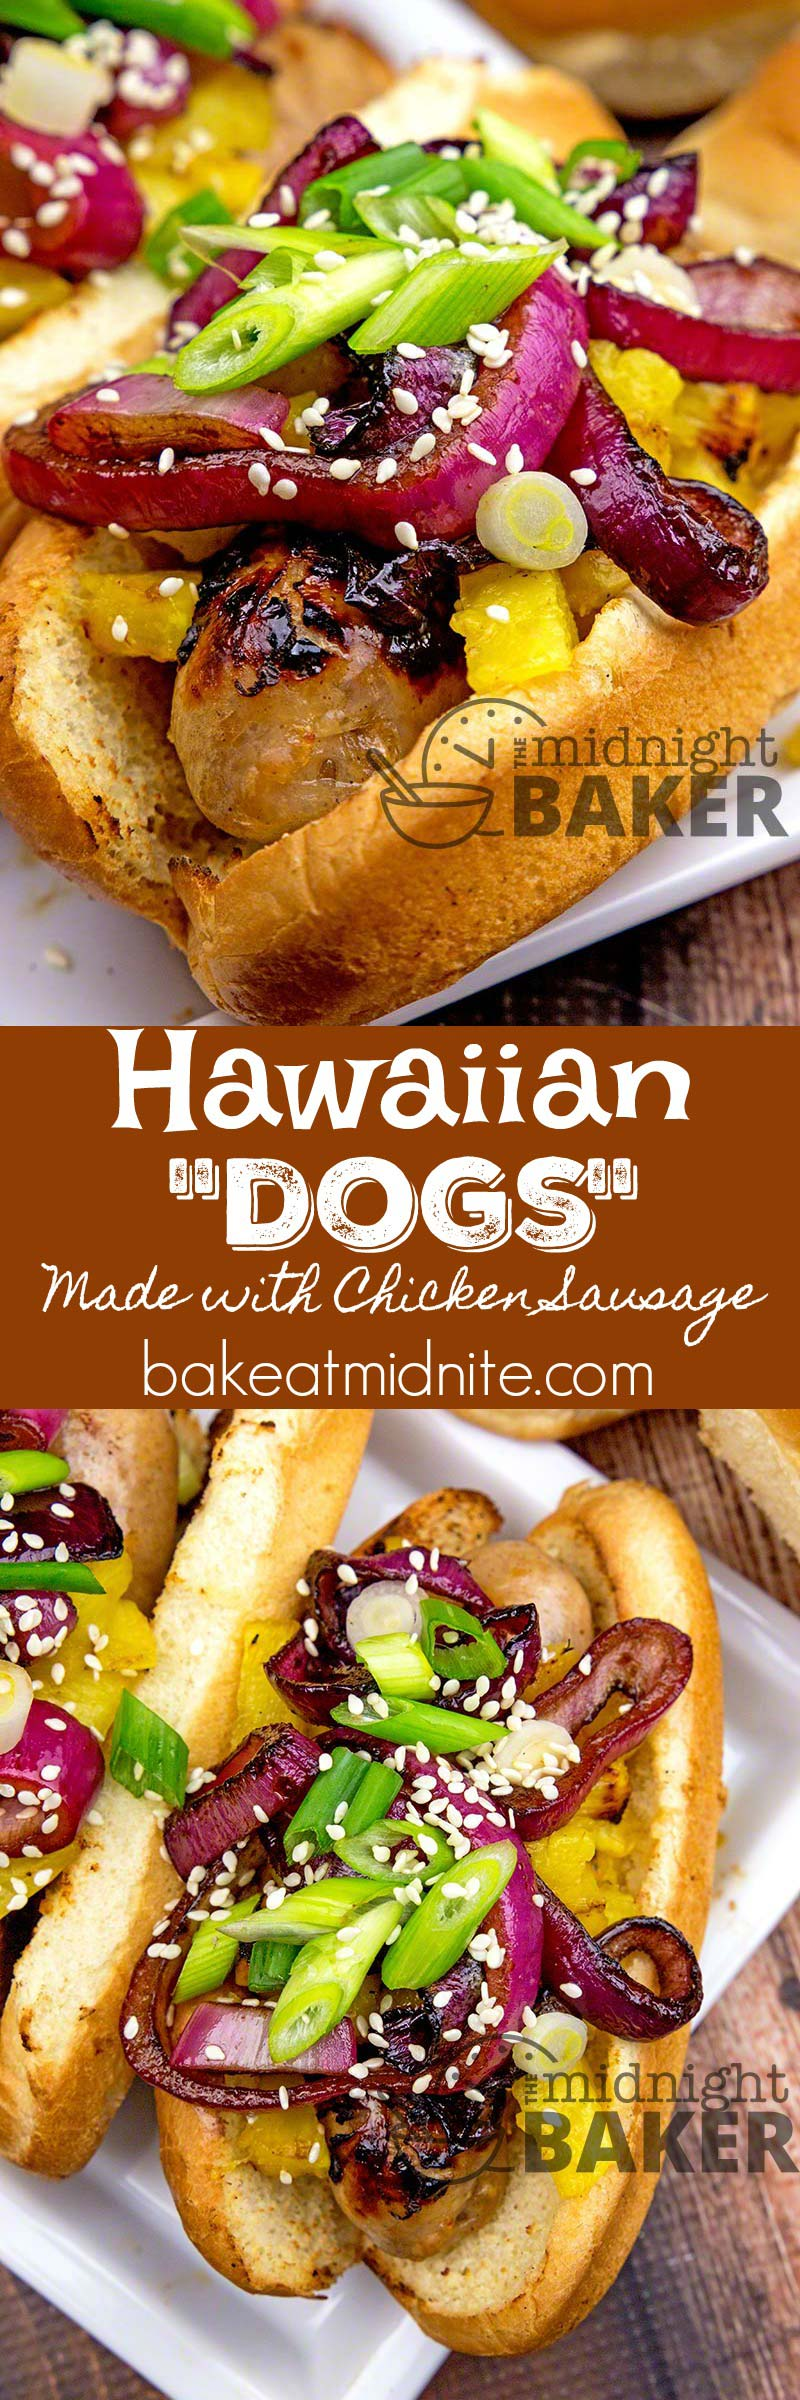 "Make these great ""dogs"" with either franks or chicken sausage. Have a Hawaiian luau at your next cookout!"